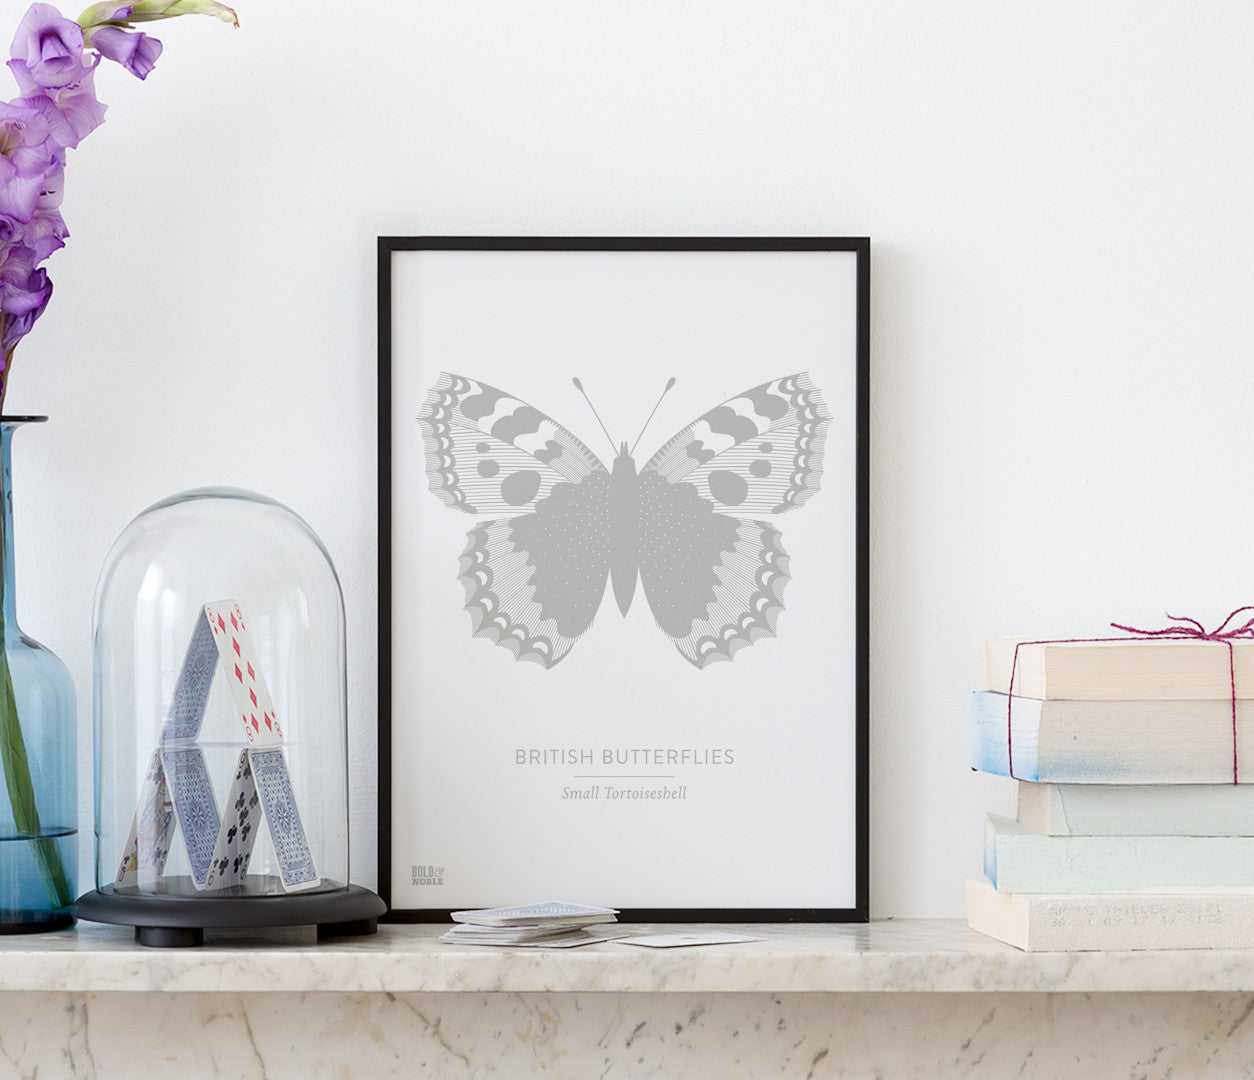 Butterflies Art Print in Putty Grey, Modern Print Designs for the Home